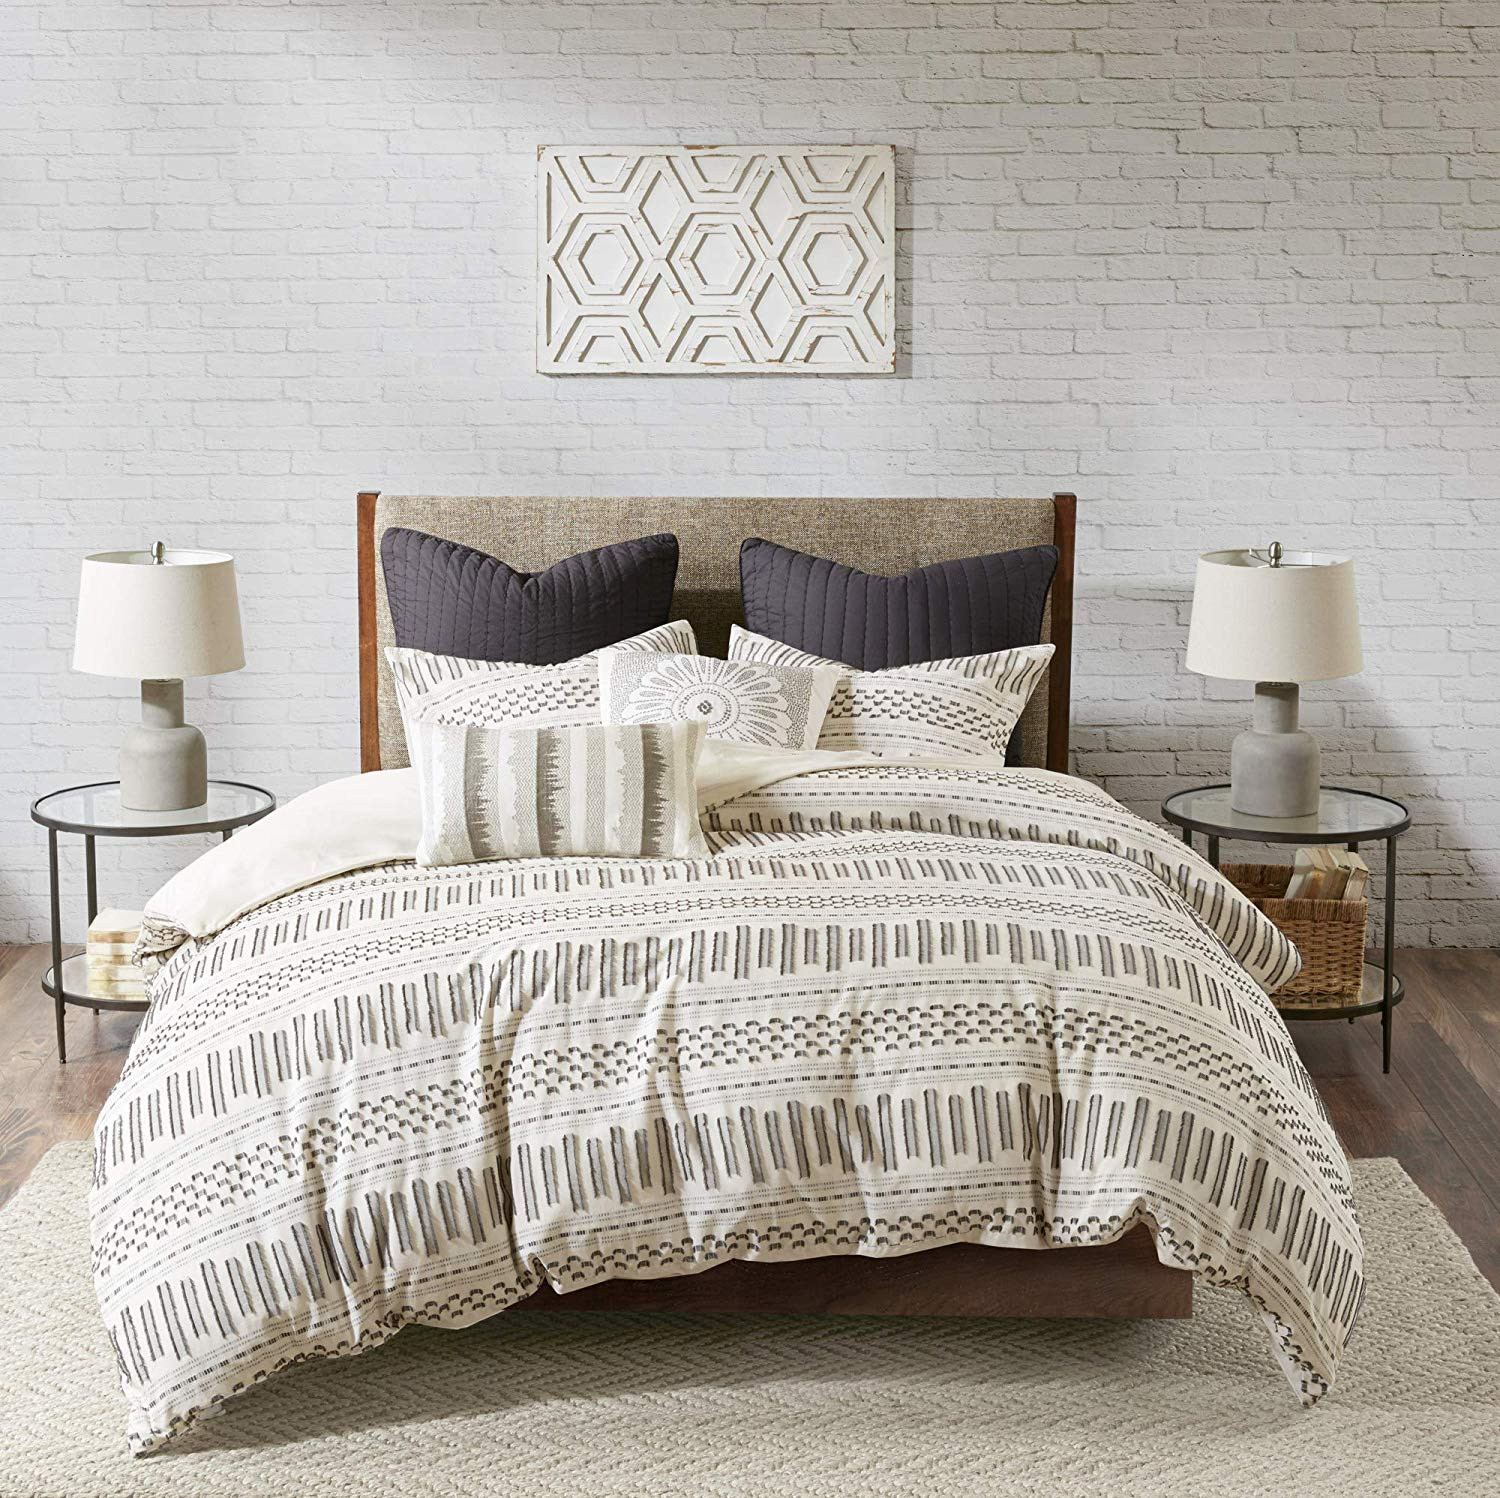 farmhouse-bedding-jacquard